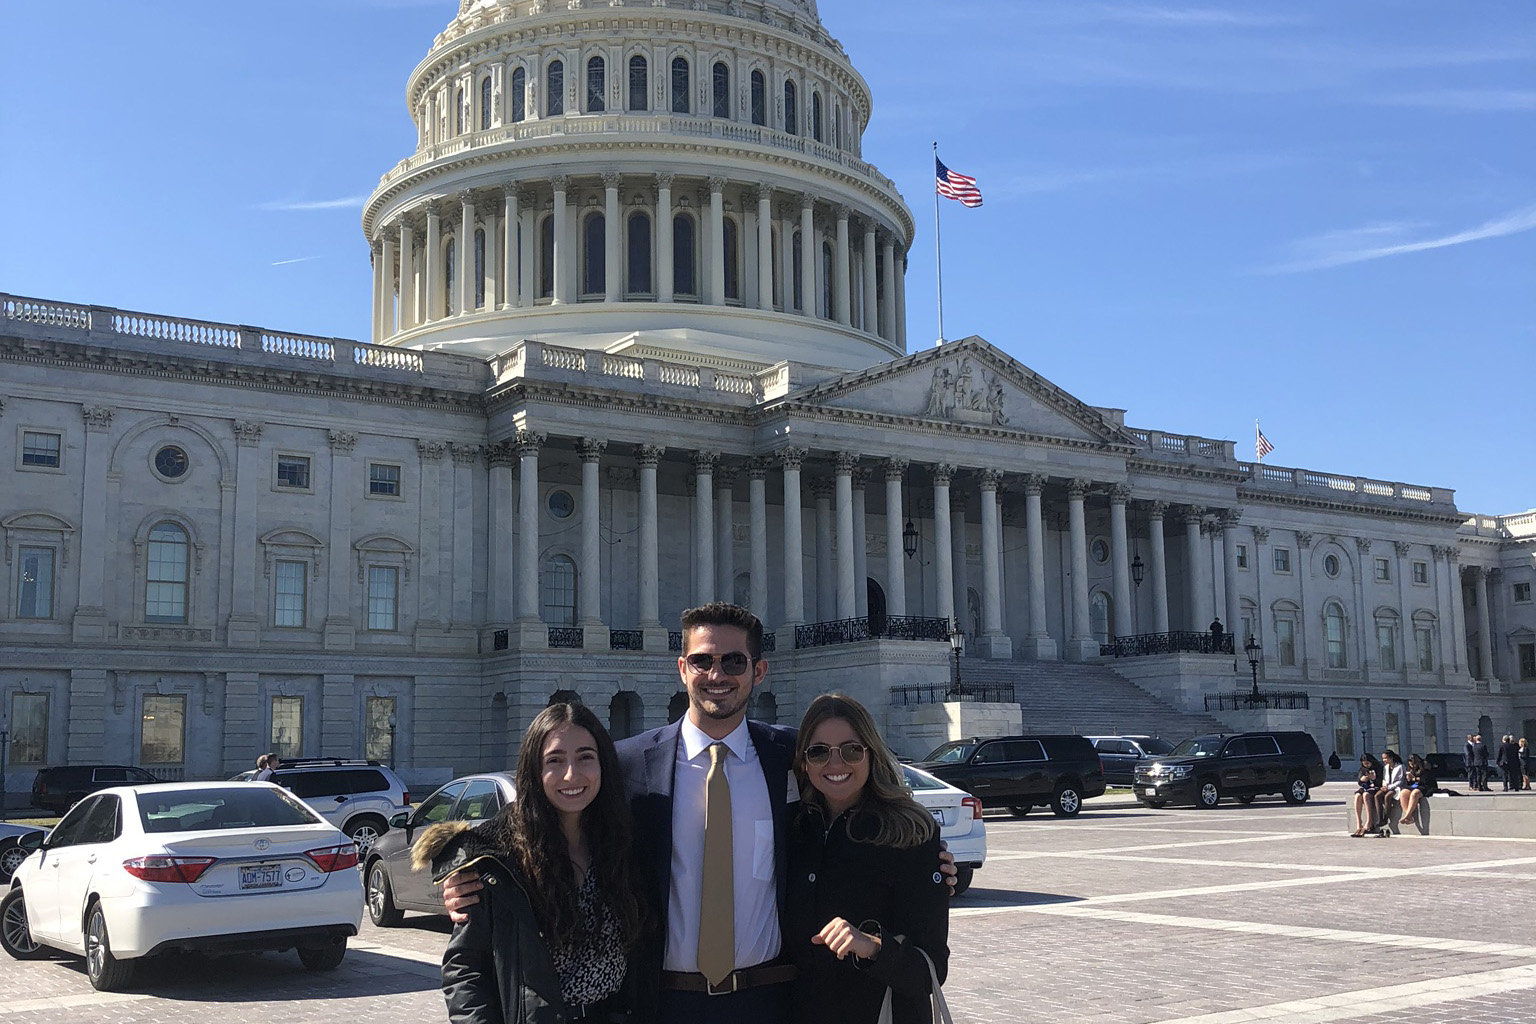 From left to right, ASI President Jasmin Fashami, Chair of the ASI Board of Directors Mark Borges, and Chair of the University Union Advisory Board Danielle Diele in front of the US Capitol building